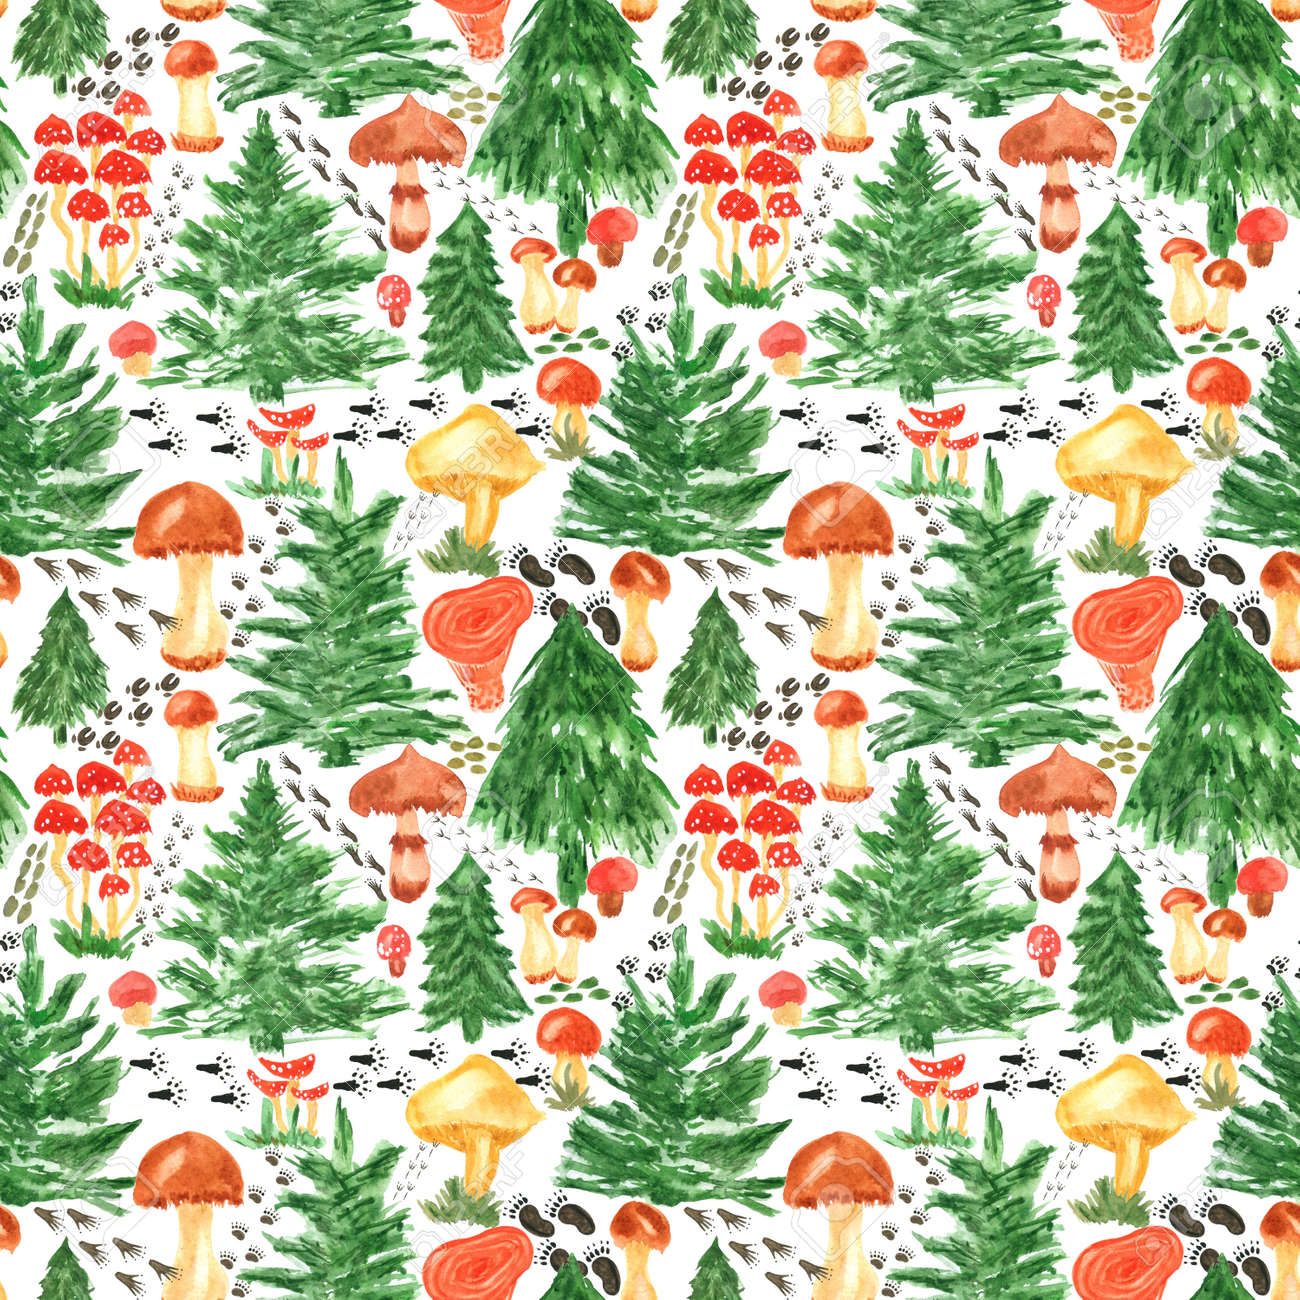 Colorful watercolor trees, animal footprints and mushrooms seamless pattern. Hand Illustration for creating fabrics, wallpapers, gift wrapping paper, invitations, textile, scrapbooking. - 165387218